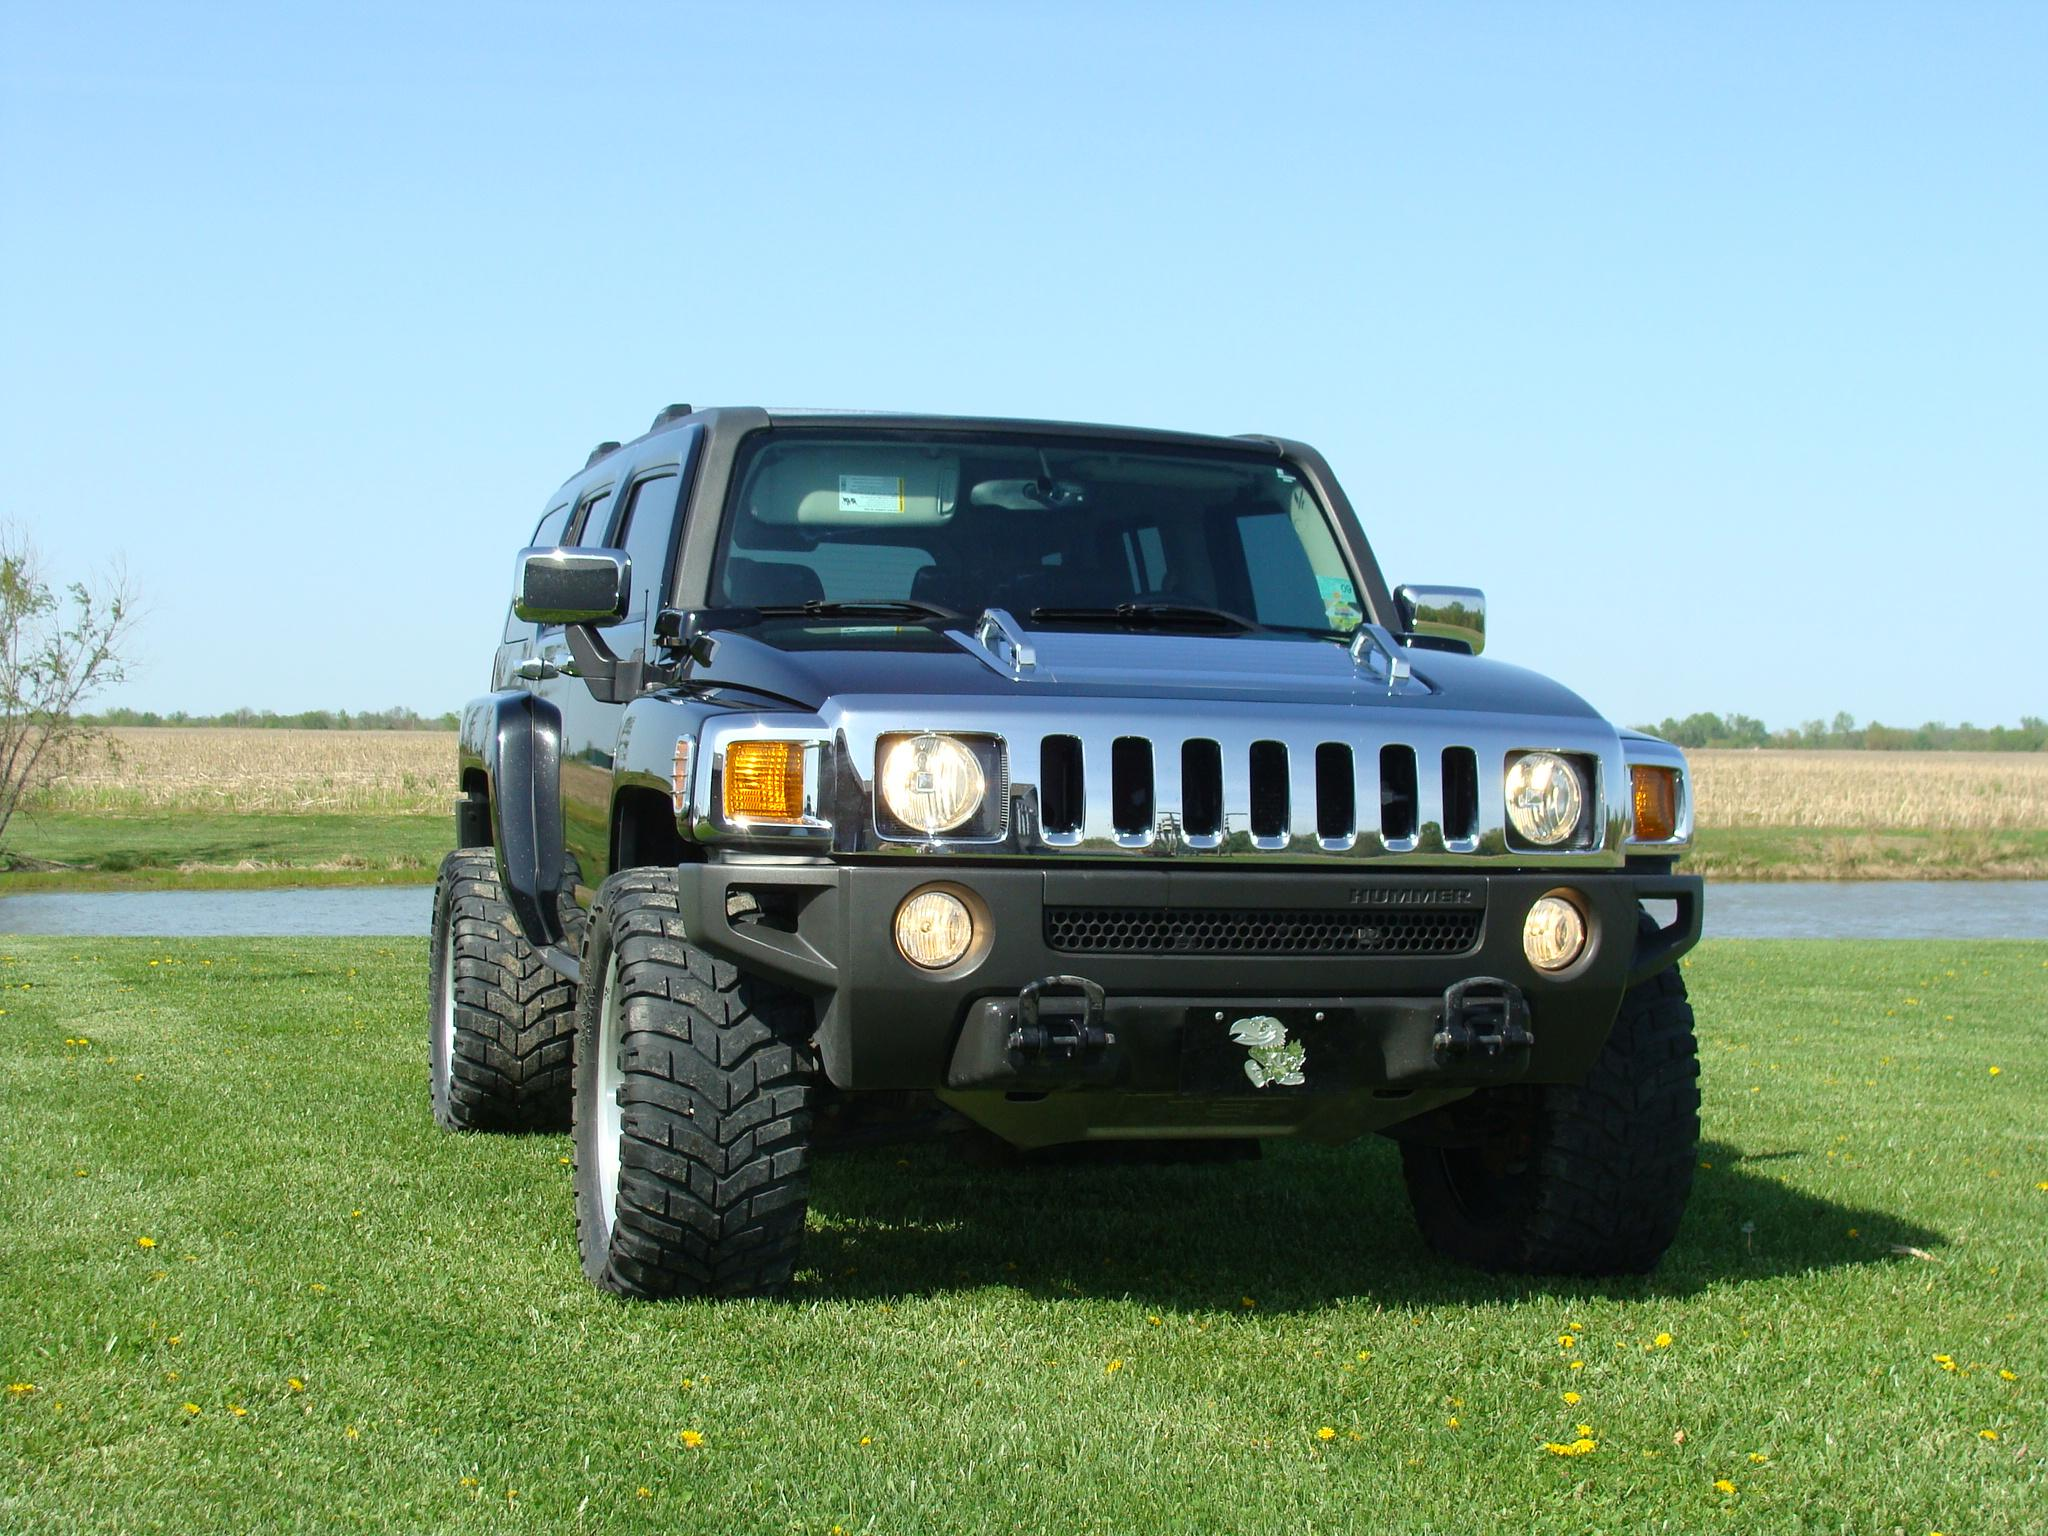 casey smith22 2007 hummer h3sport utility 4d specs photos modification info at cardomain. Black Bedroom Furniture Sets. Home Design Ideas